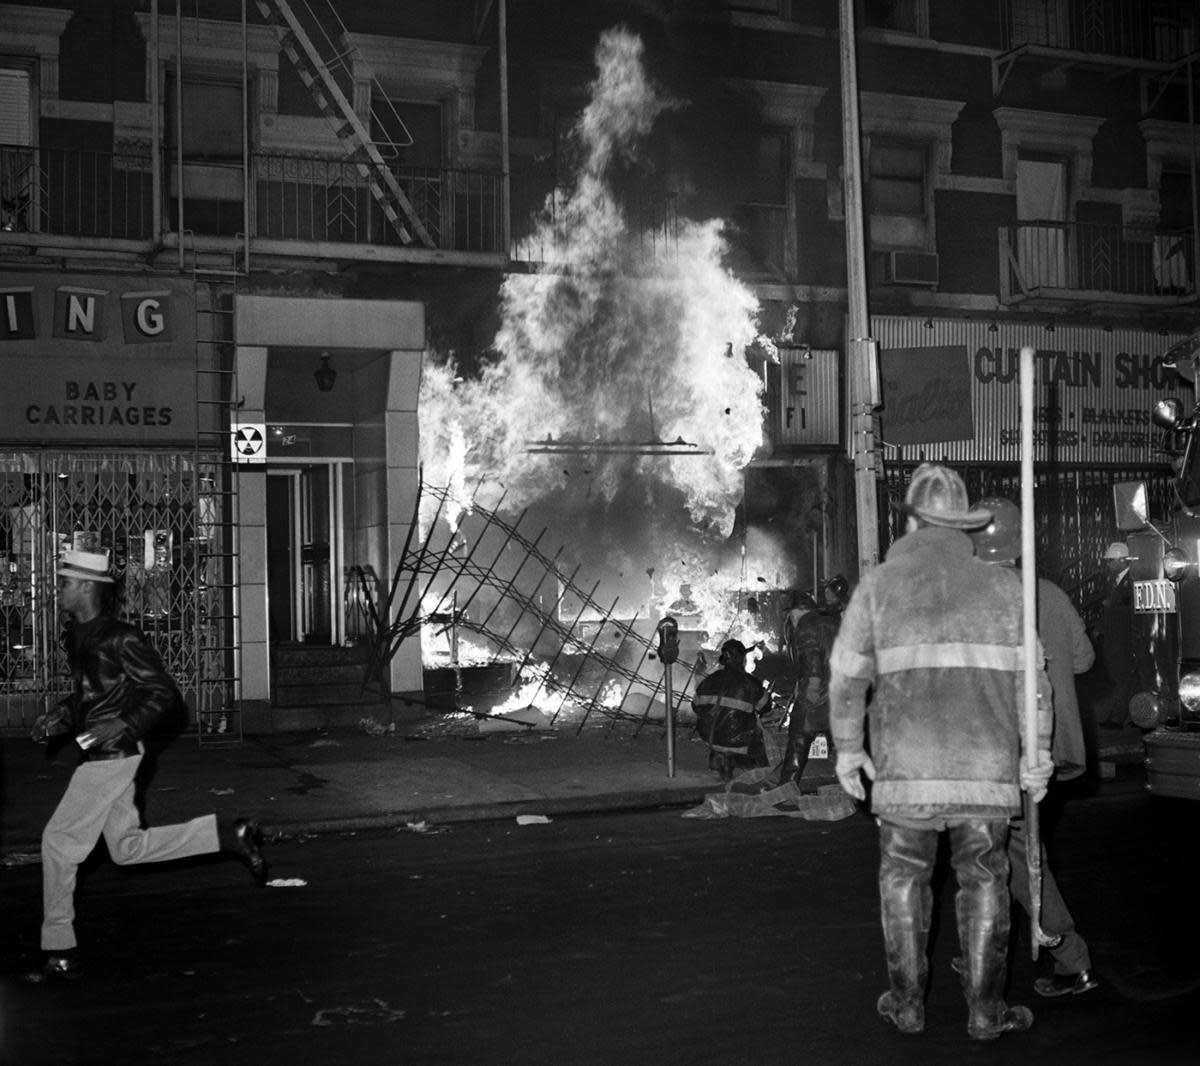 Firefighters battle a store fire set off during riots in Harlem, New York City, after the assassination of Martin Luther King Jr. (Credit: Bettmann Archive/Getty Images)